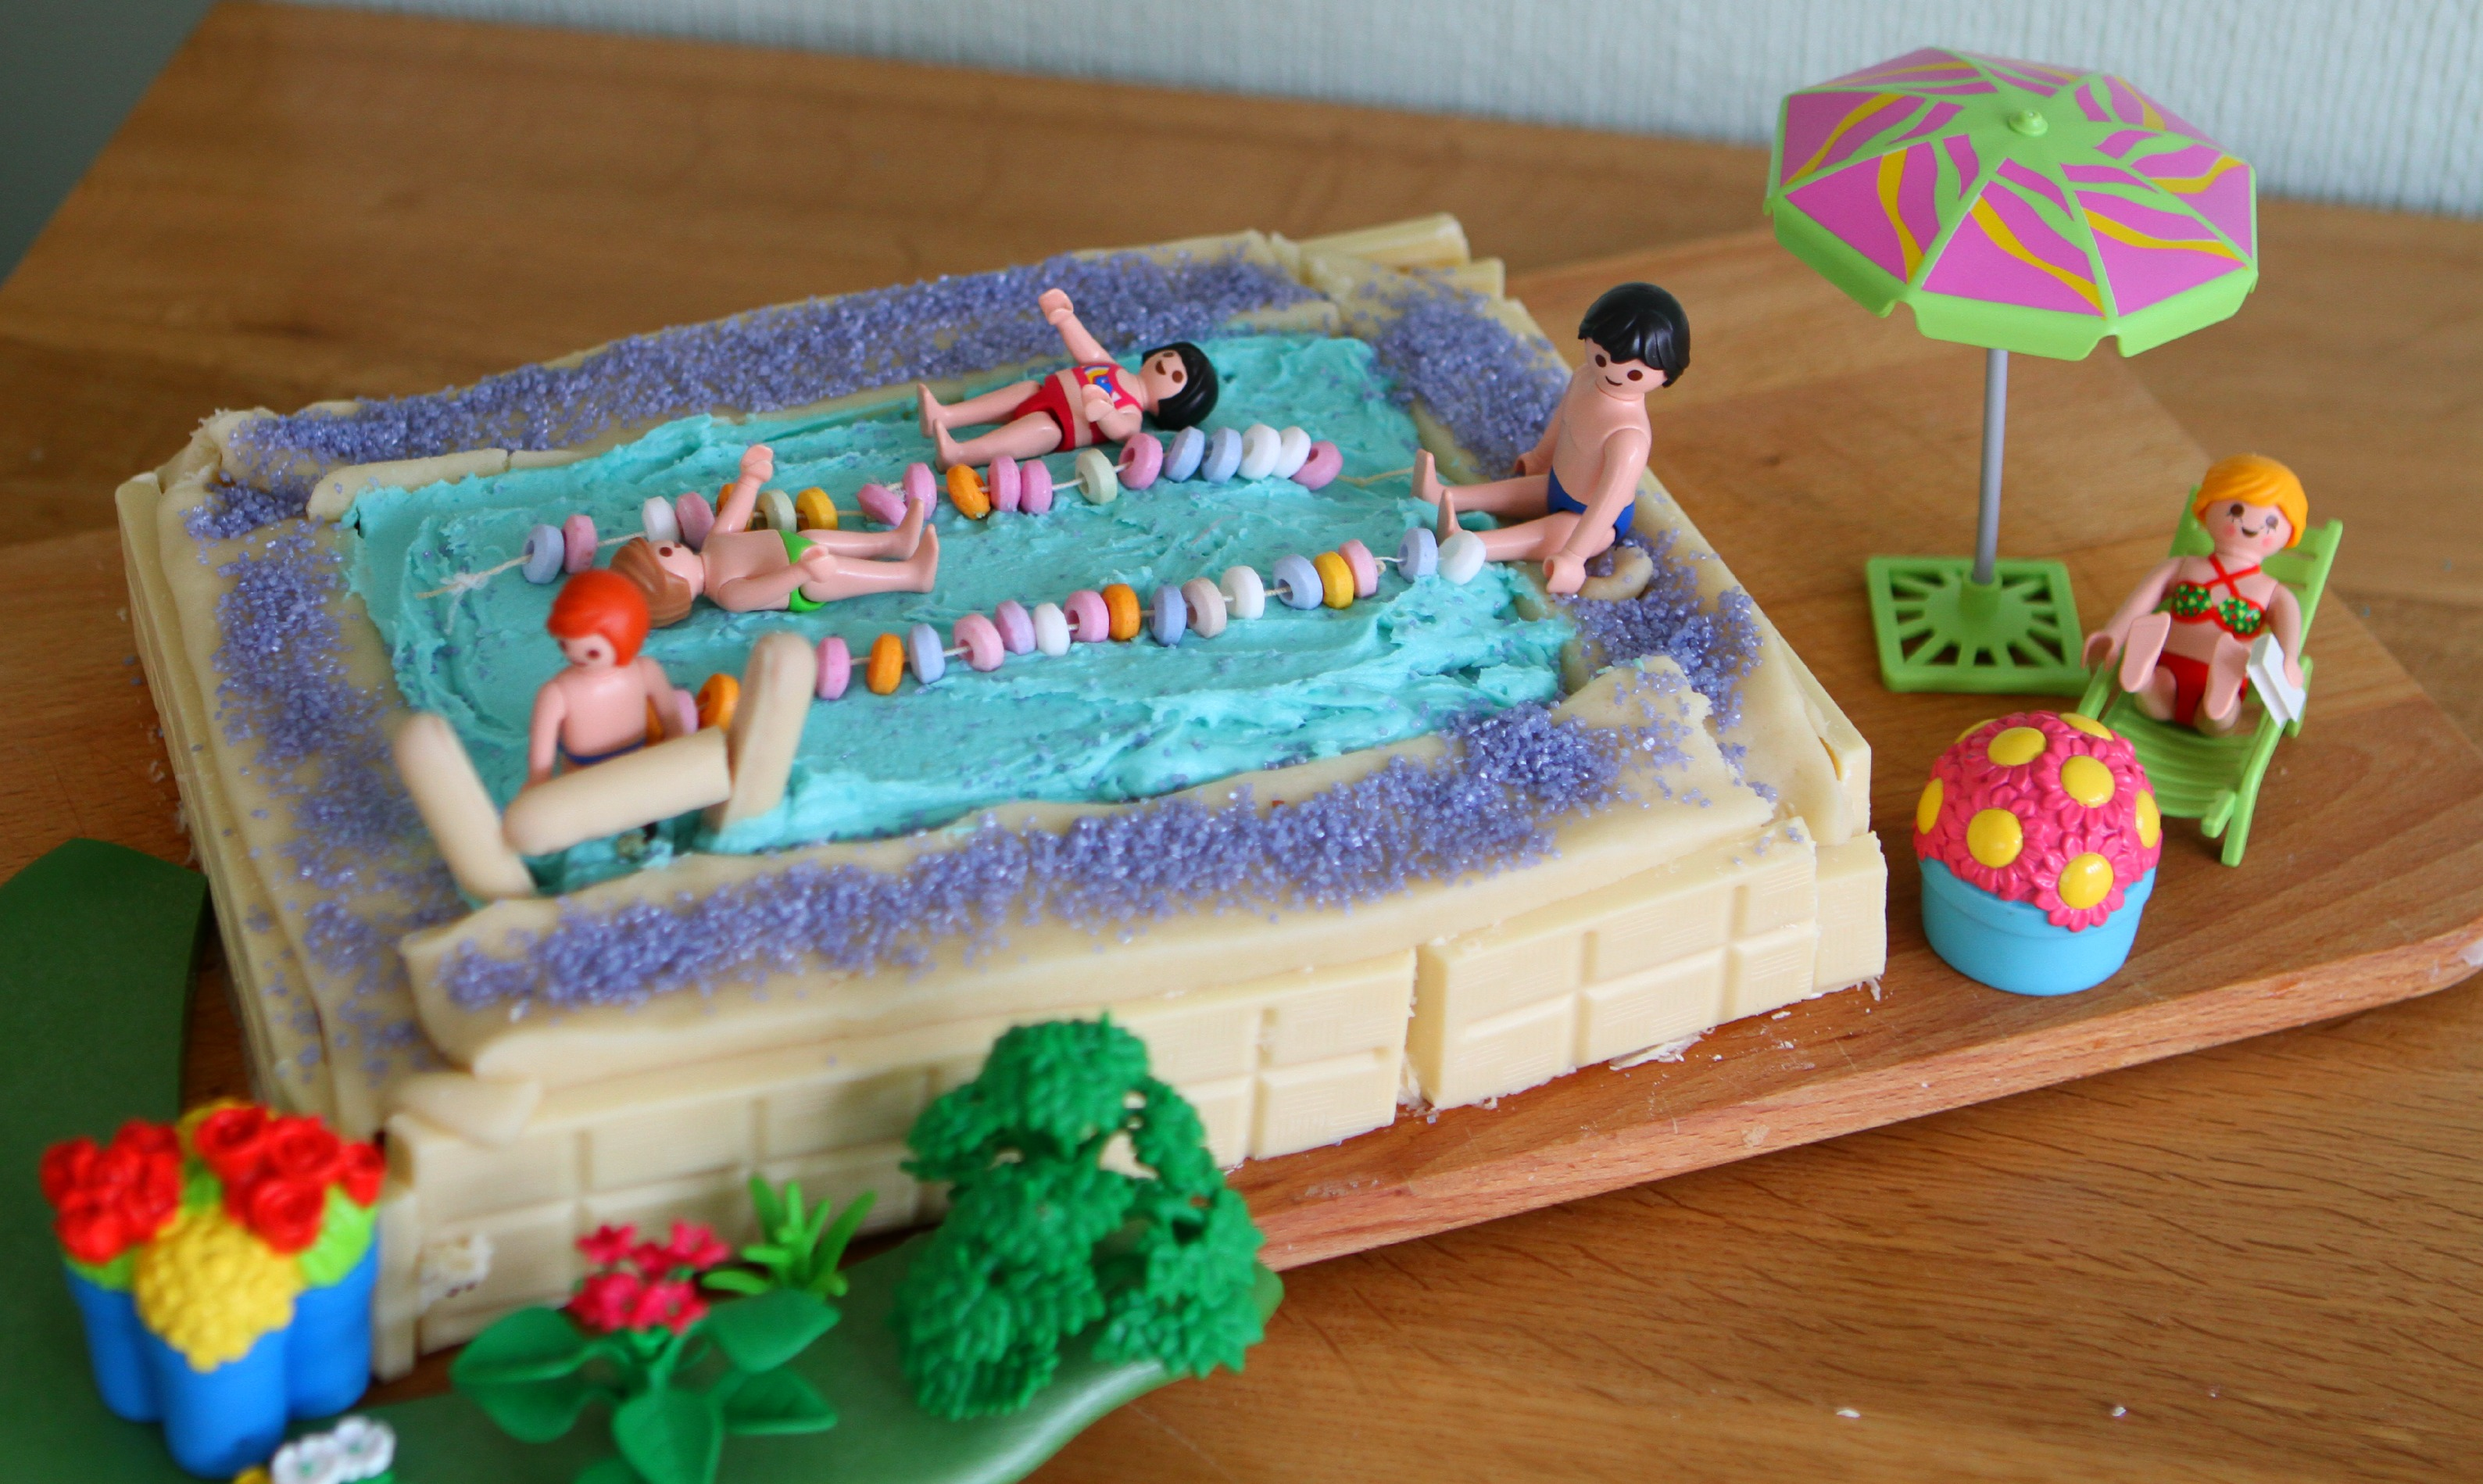 Swimming Pool Cake Team Honk Bake Off Mummy Mishaps